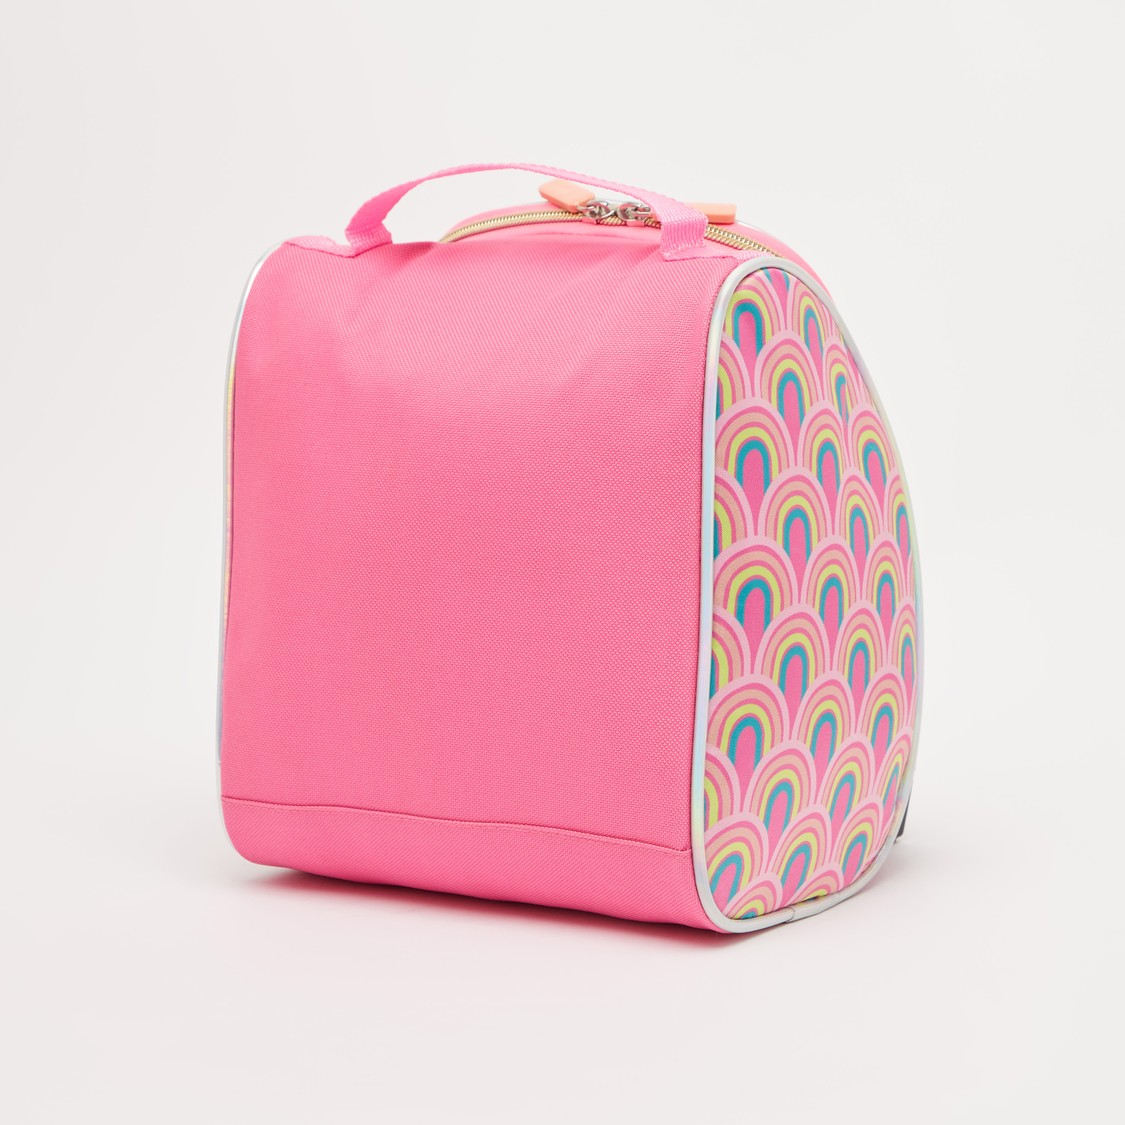 Printed Lunch Bag with Strap and Zip Closure